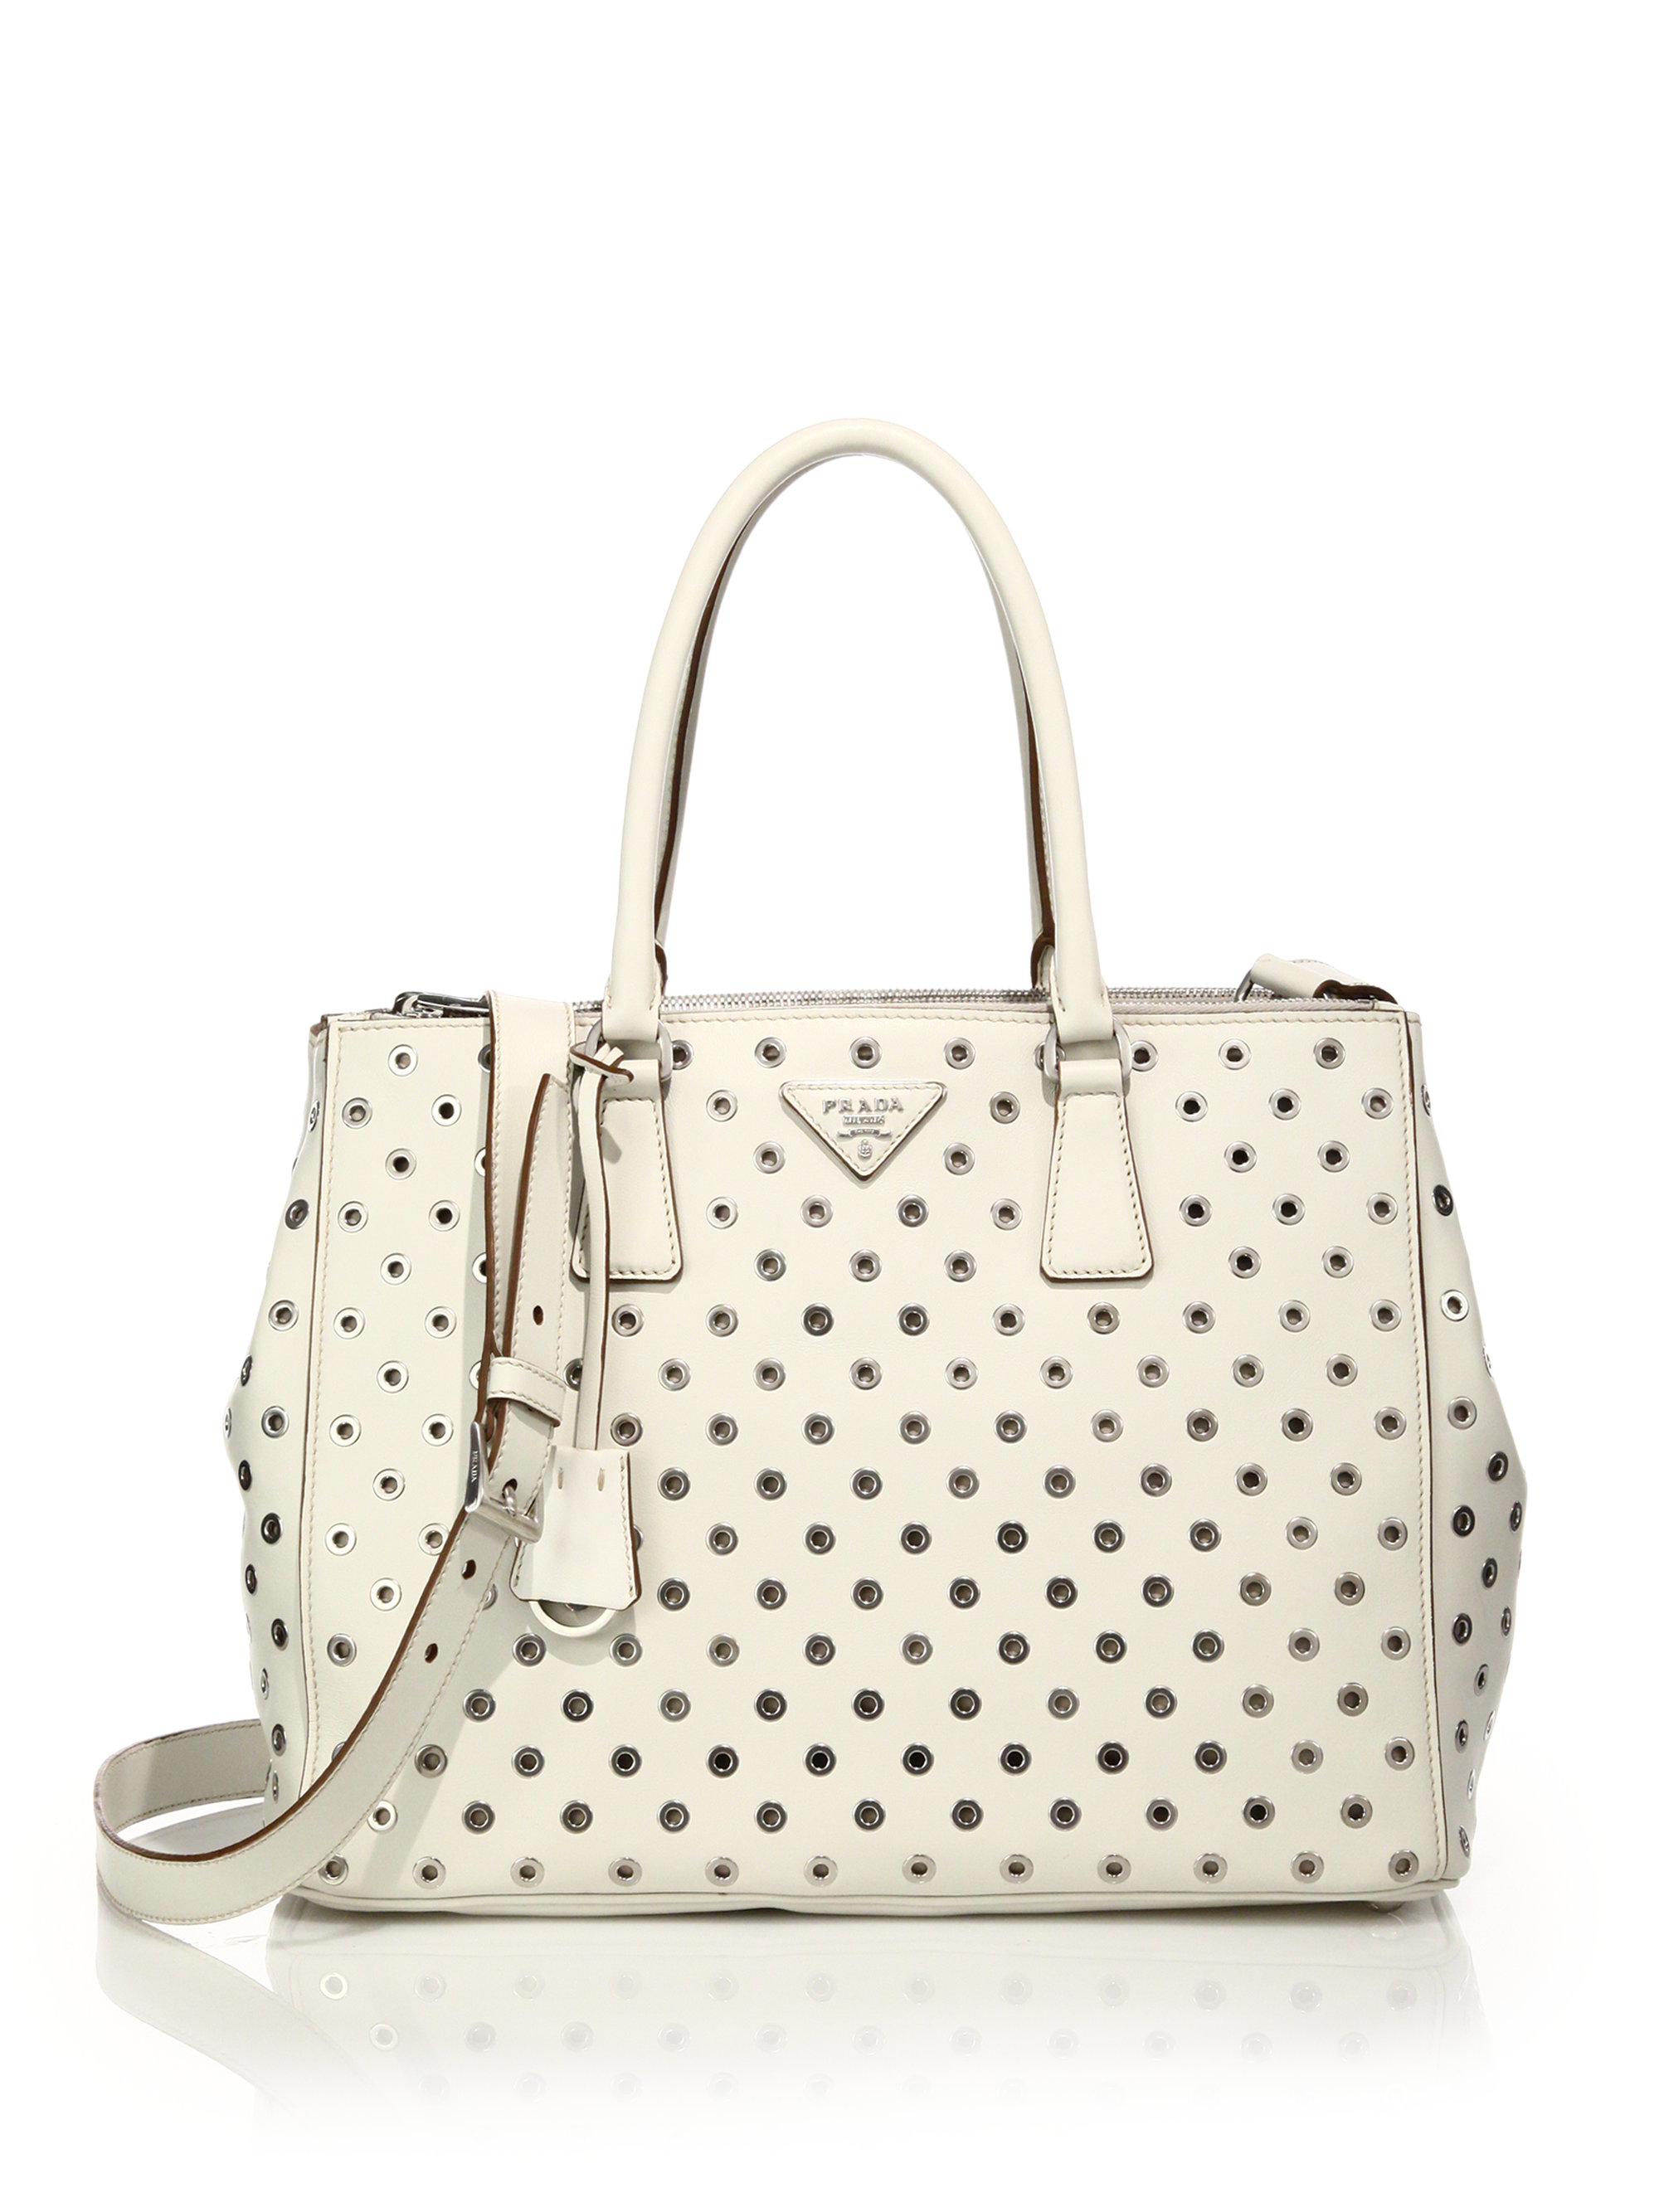 Prada City Calf Double Zip Tote in Beige (ivory) | Lyst